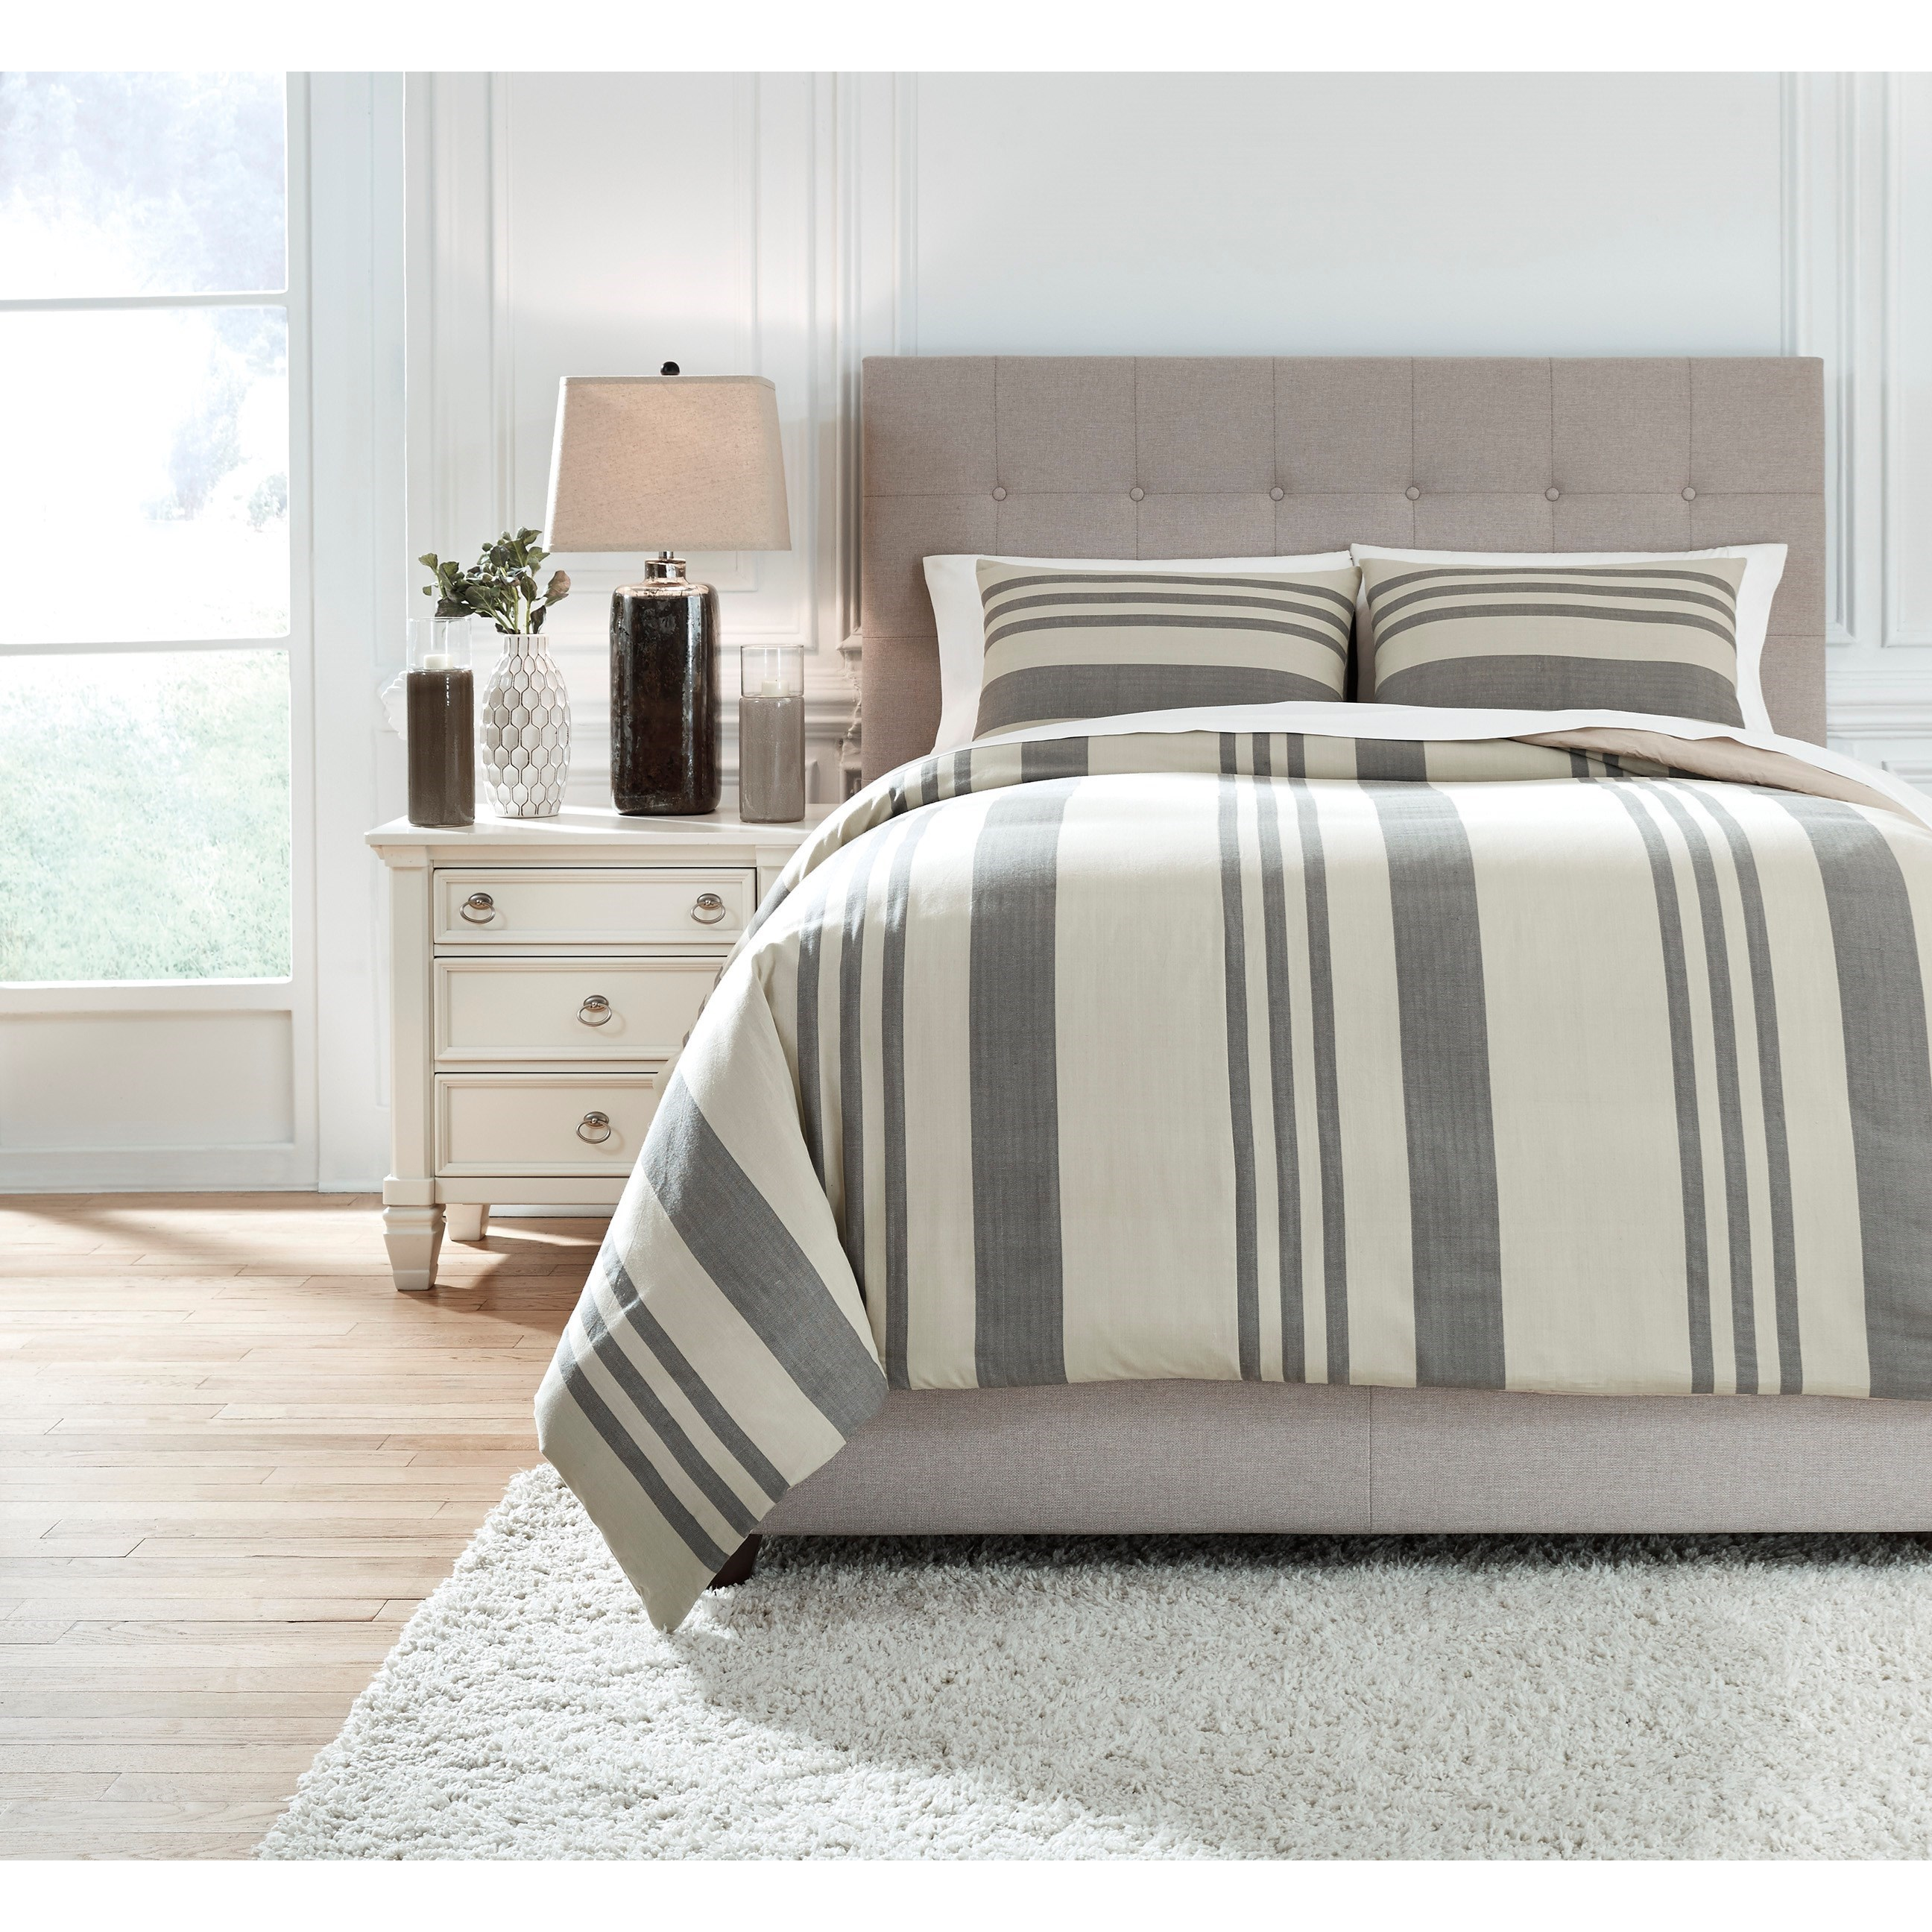 Bedding Sets King Schukei Natural/Charcoal Comforter Set by Signature Design by Ashley at Rife's Home Furniture